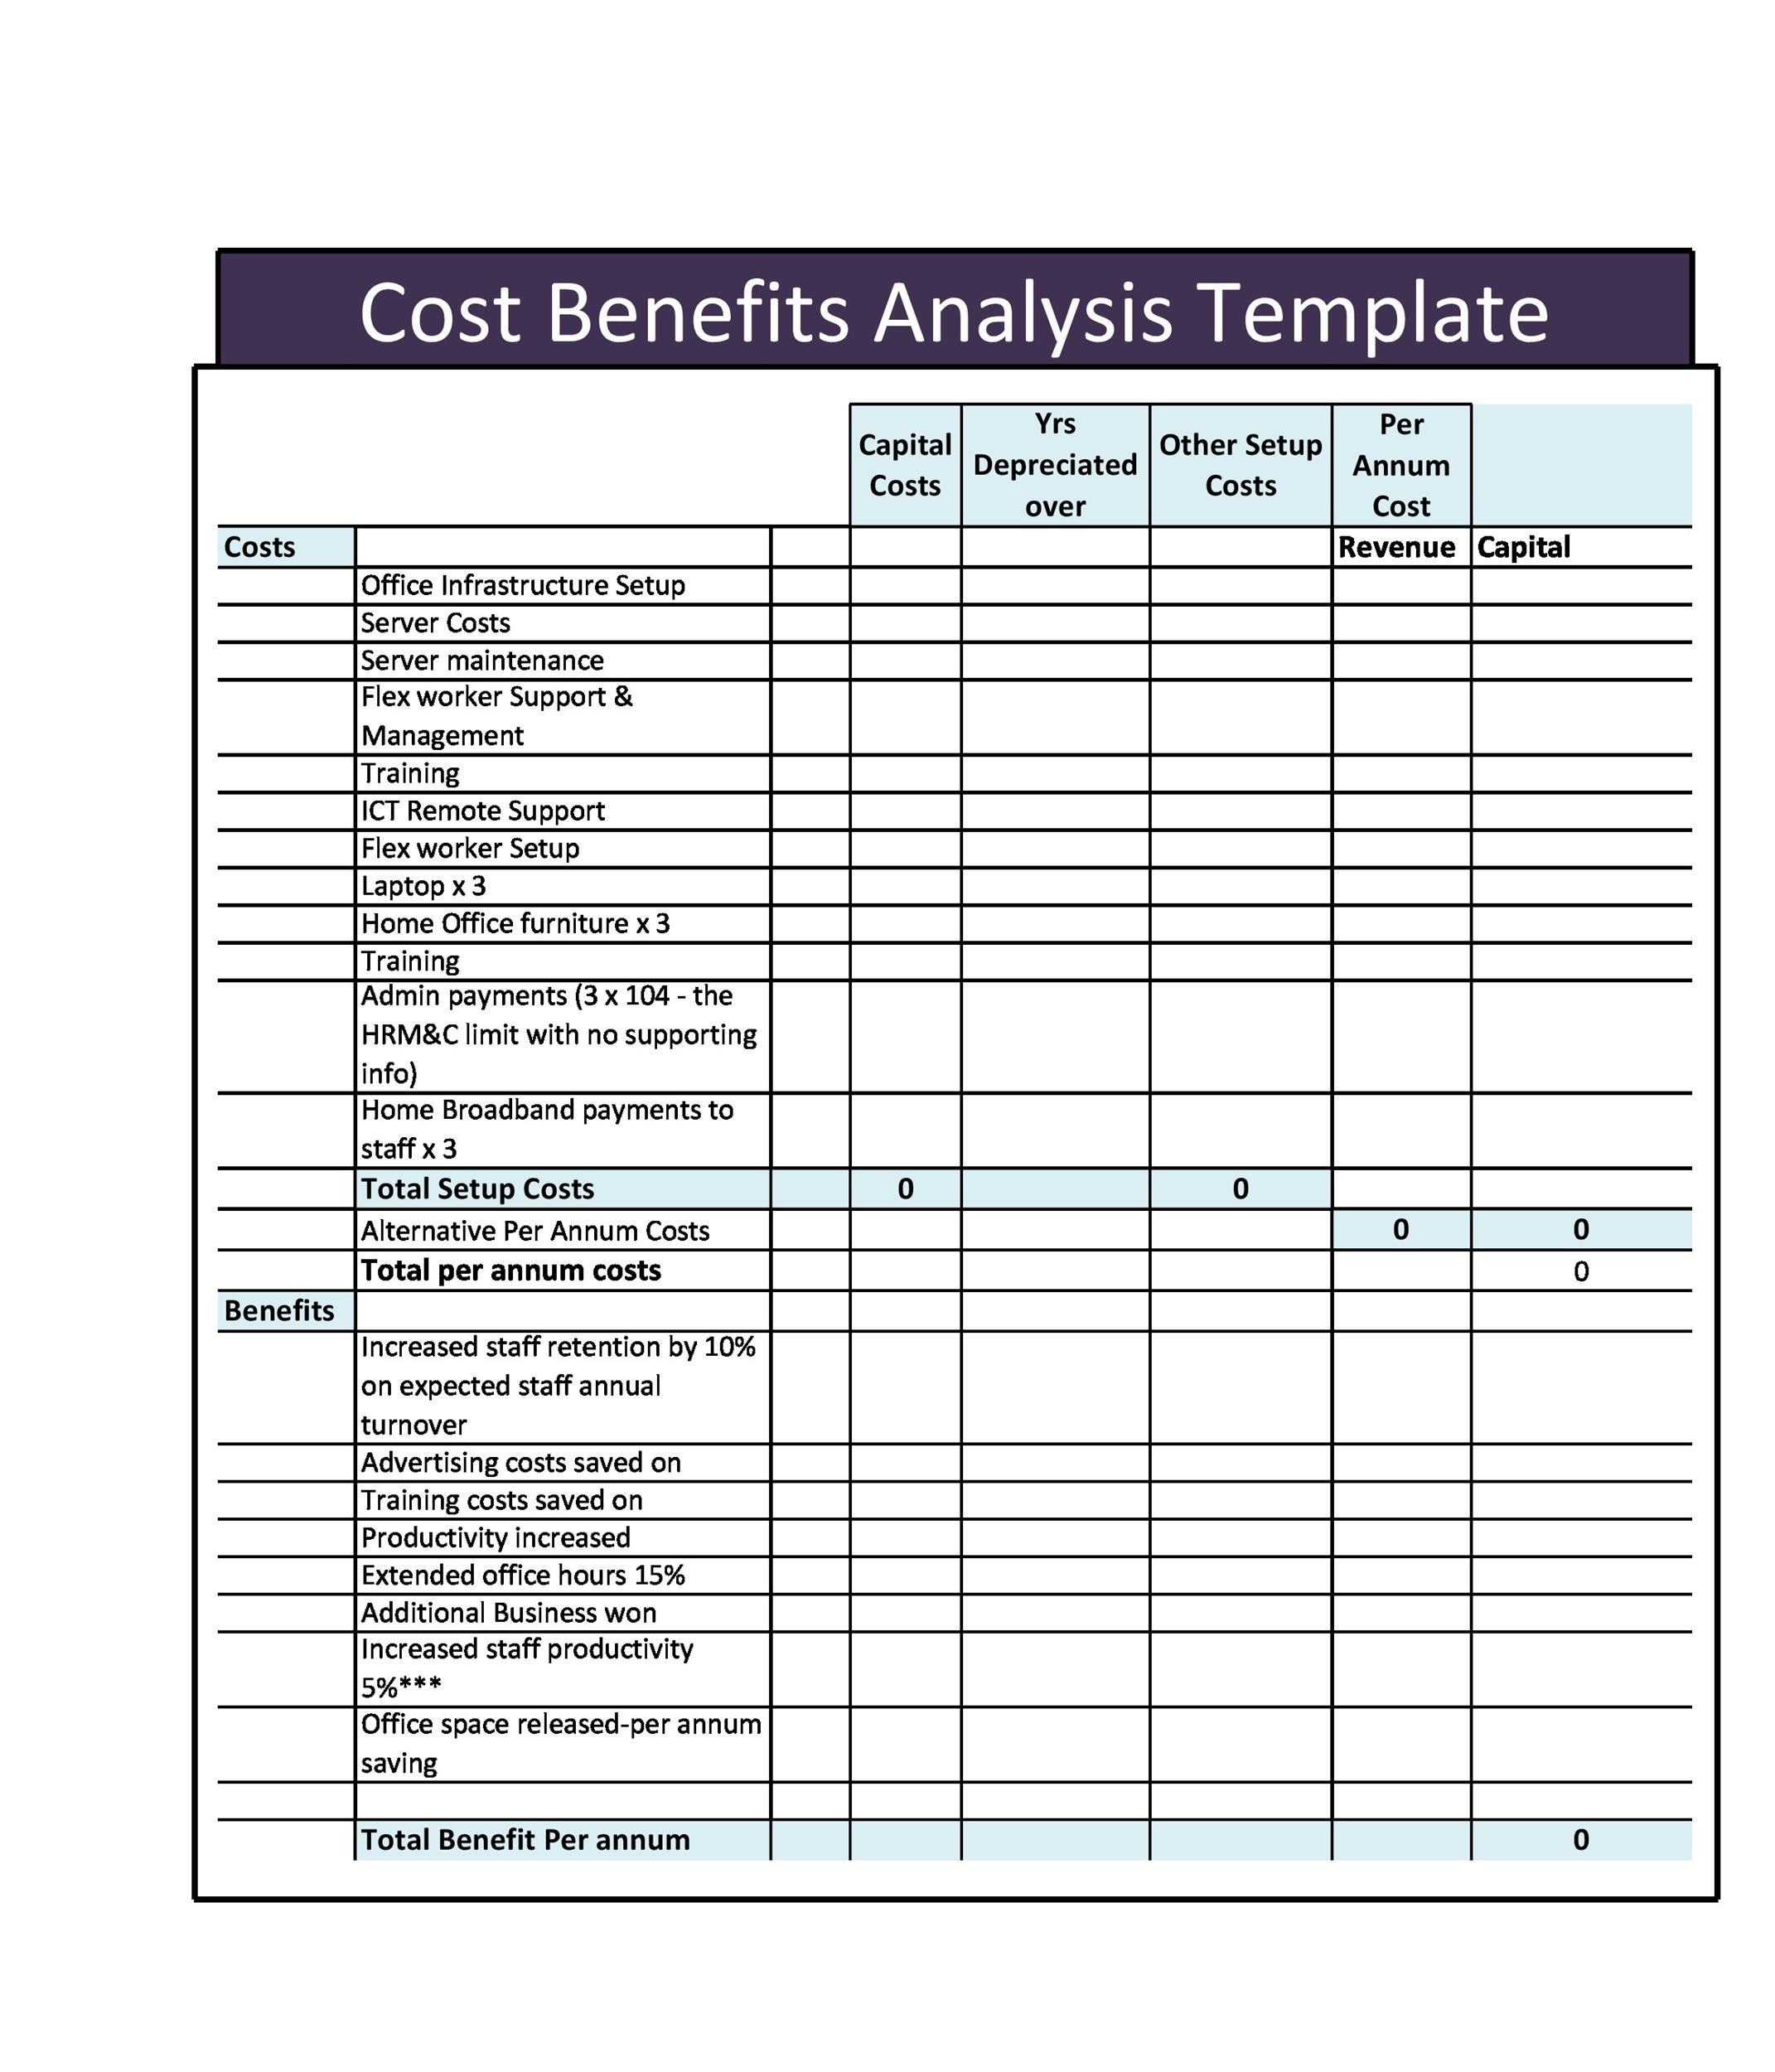 pros and cons matrix template - 40 cost benefit analysis templates examples template lab